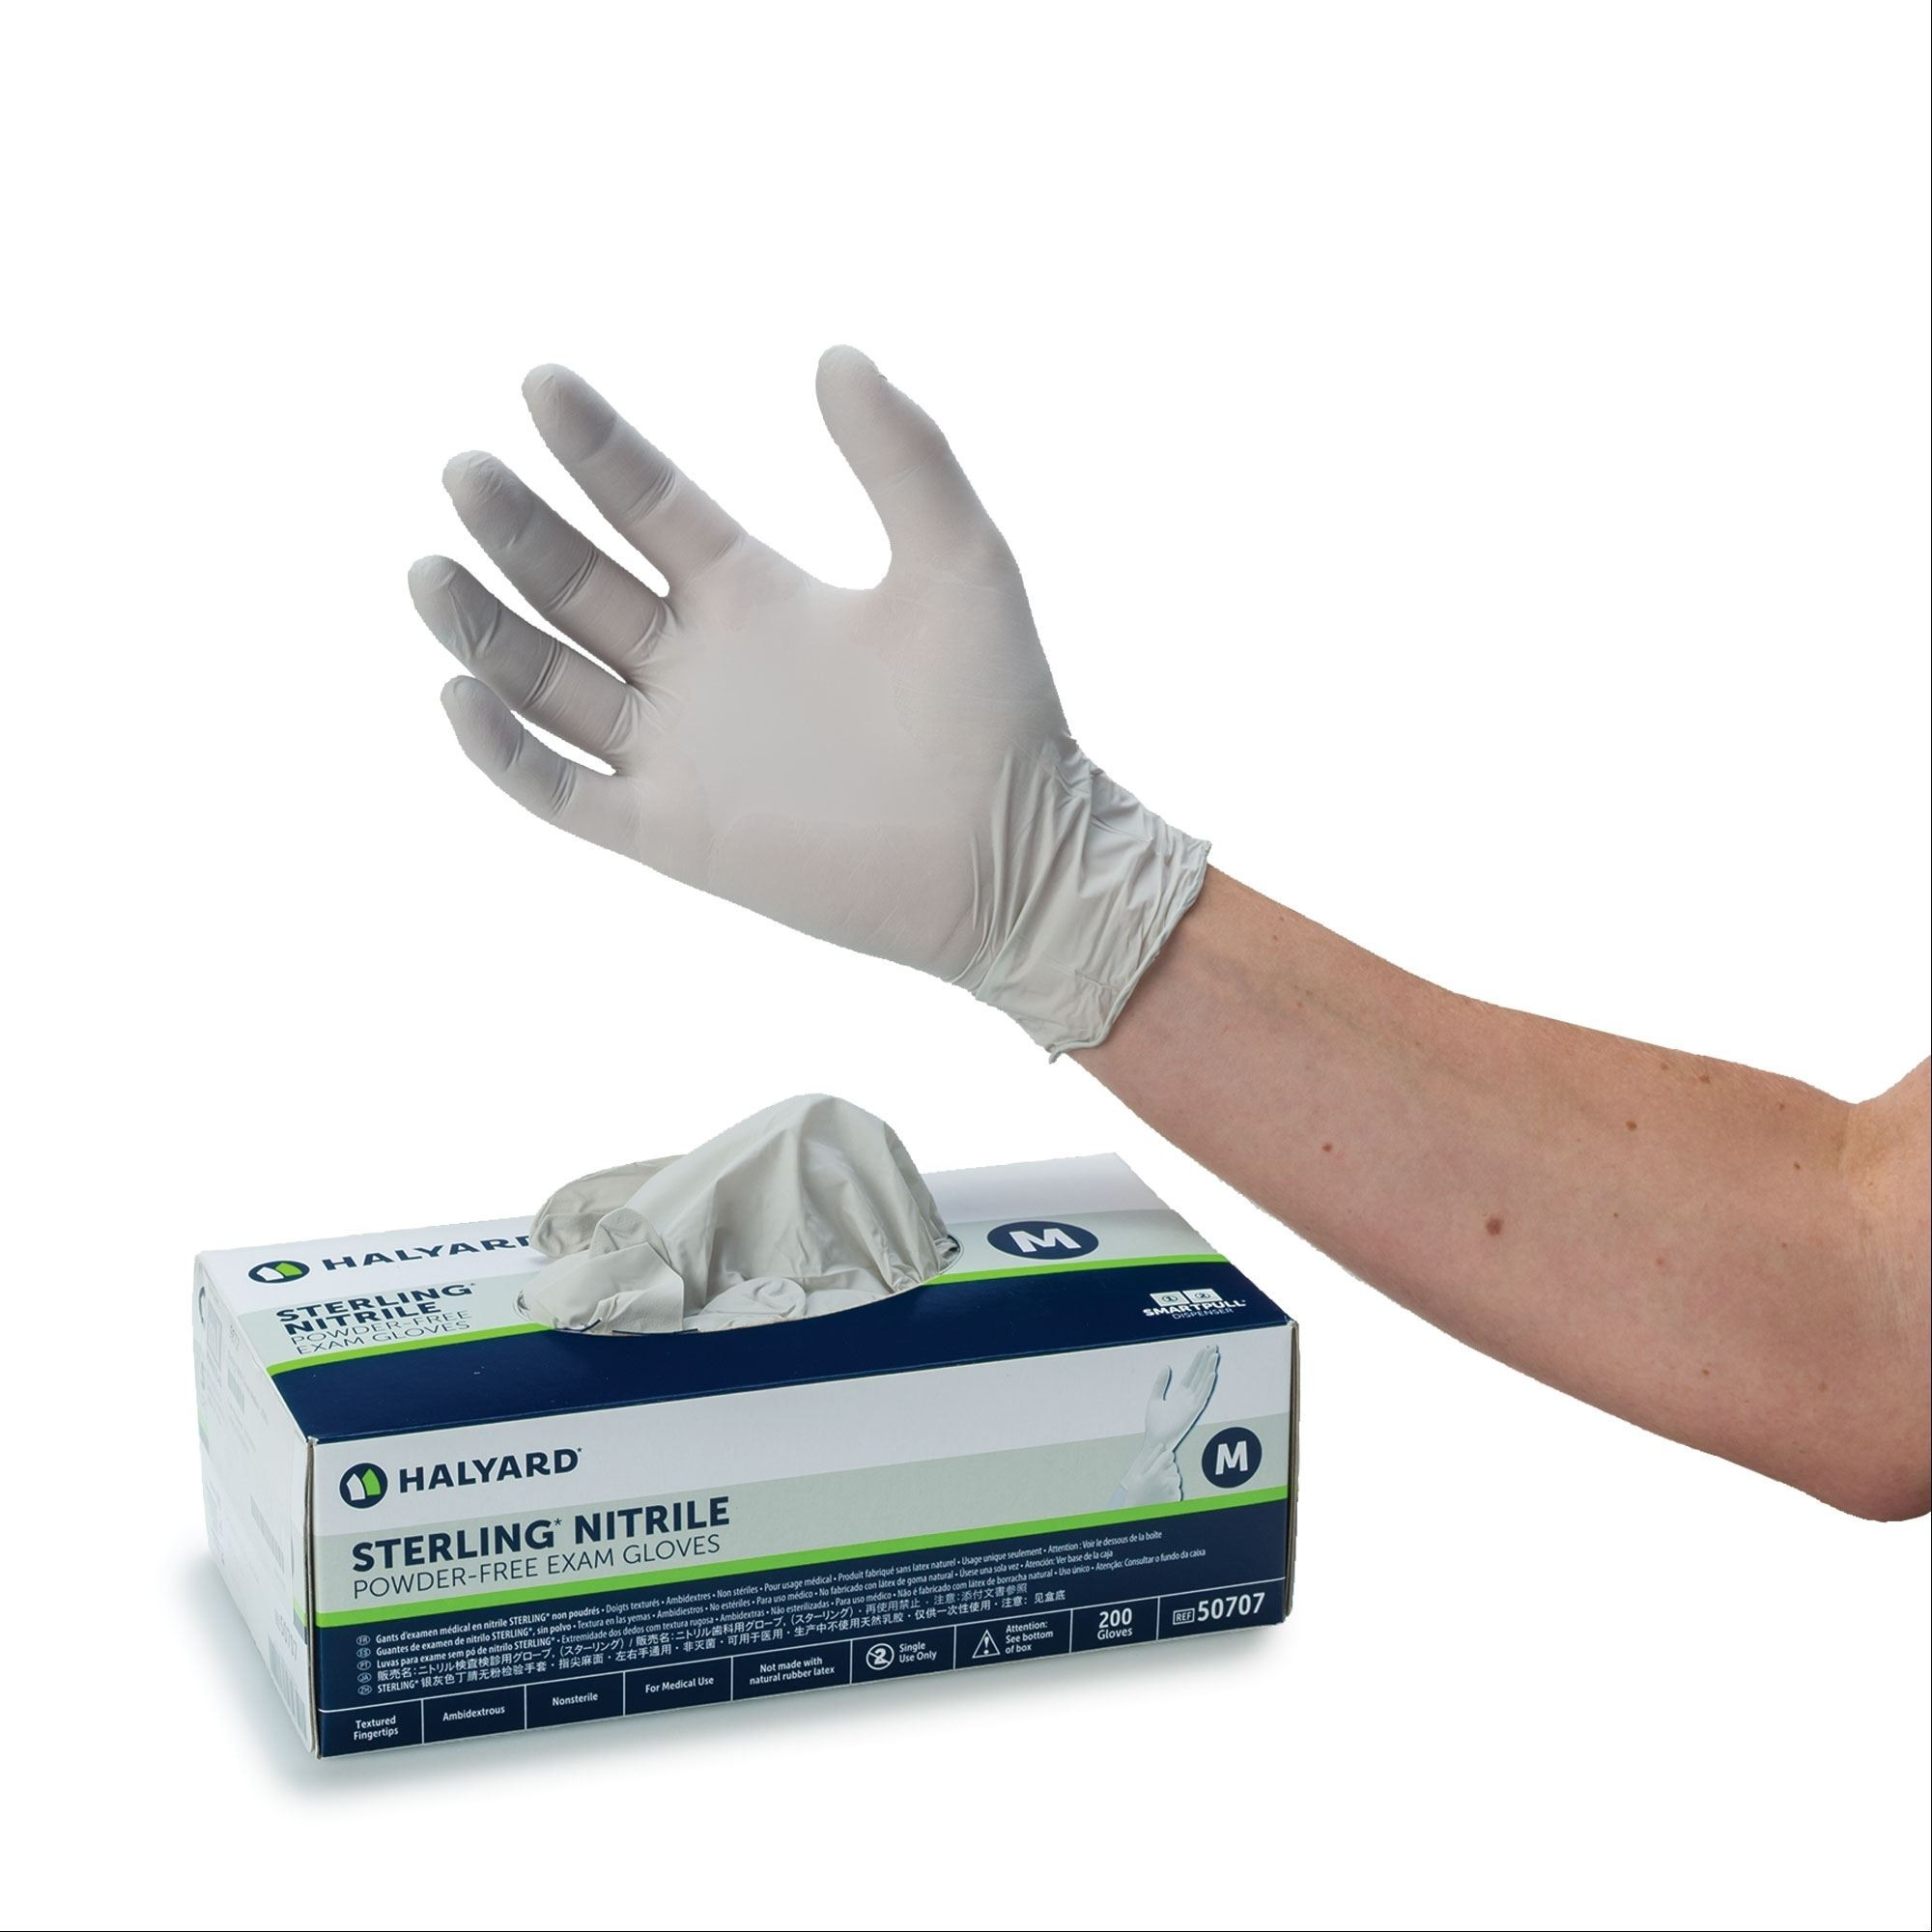 Halyard gloves (200 pack)